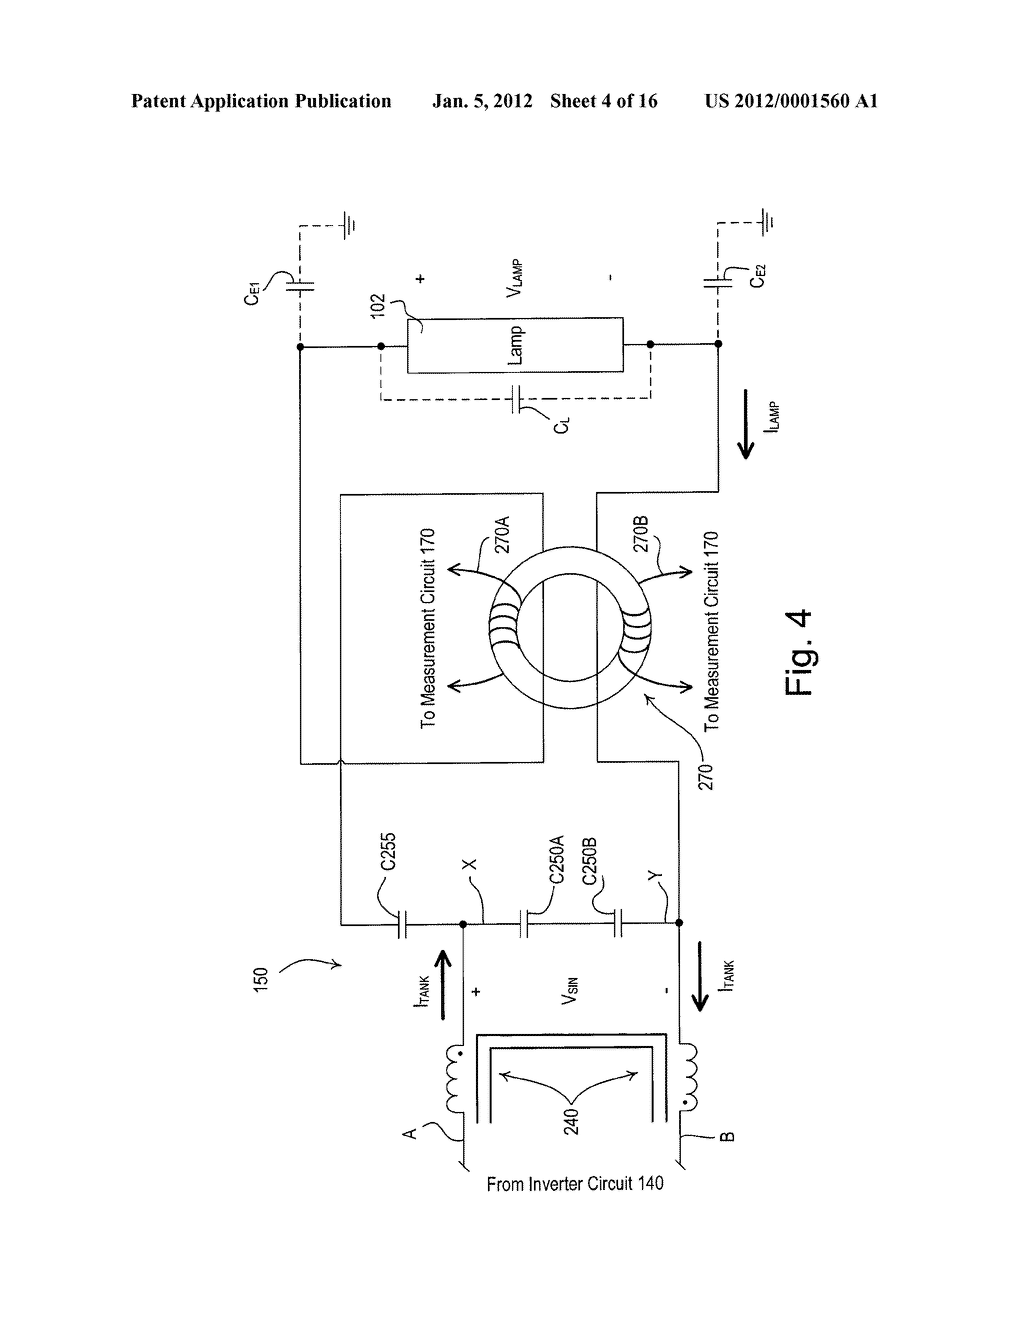 Circuit Diagram Inverter Electronic Ballast Having A Partially Self Oscillating Schematic And Image 05